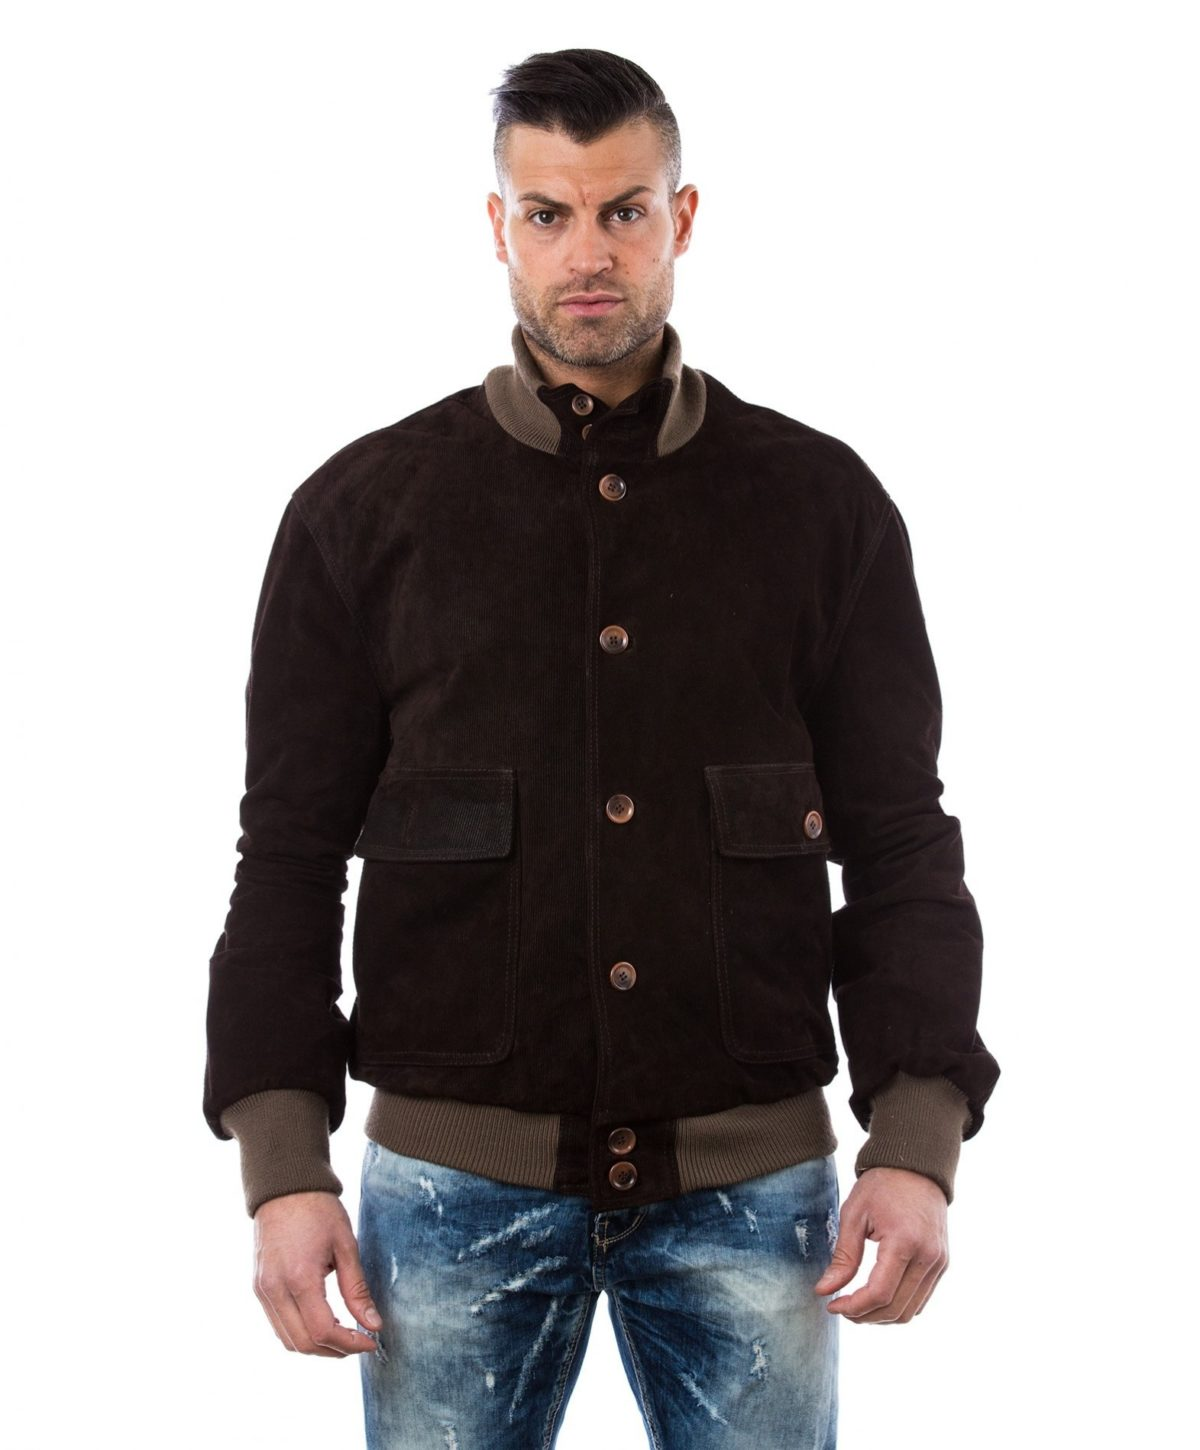 men-s-leather-jacket-genuine-soft-leather-style-bomber-wool-cuffs-and-bottom-buttons-closing-blue-color-mod-alex